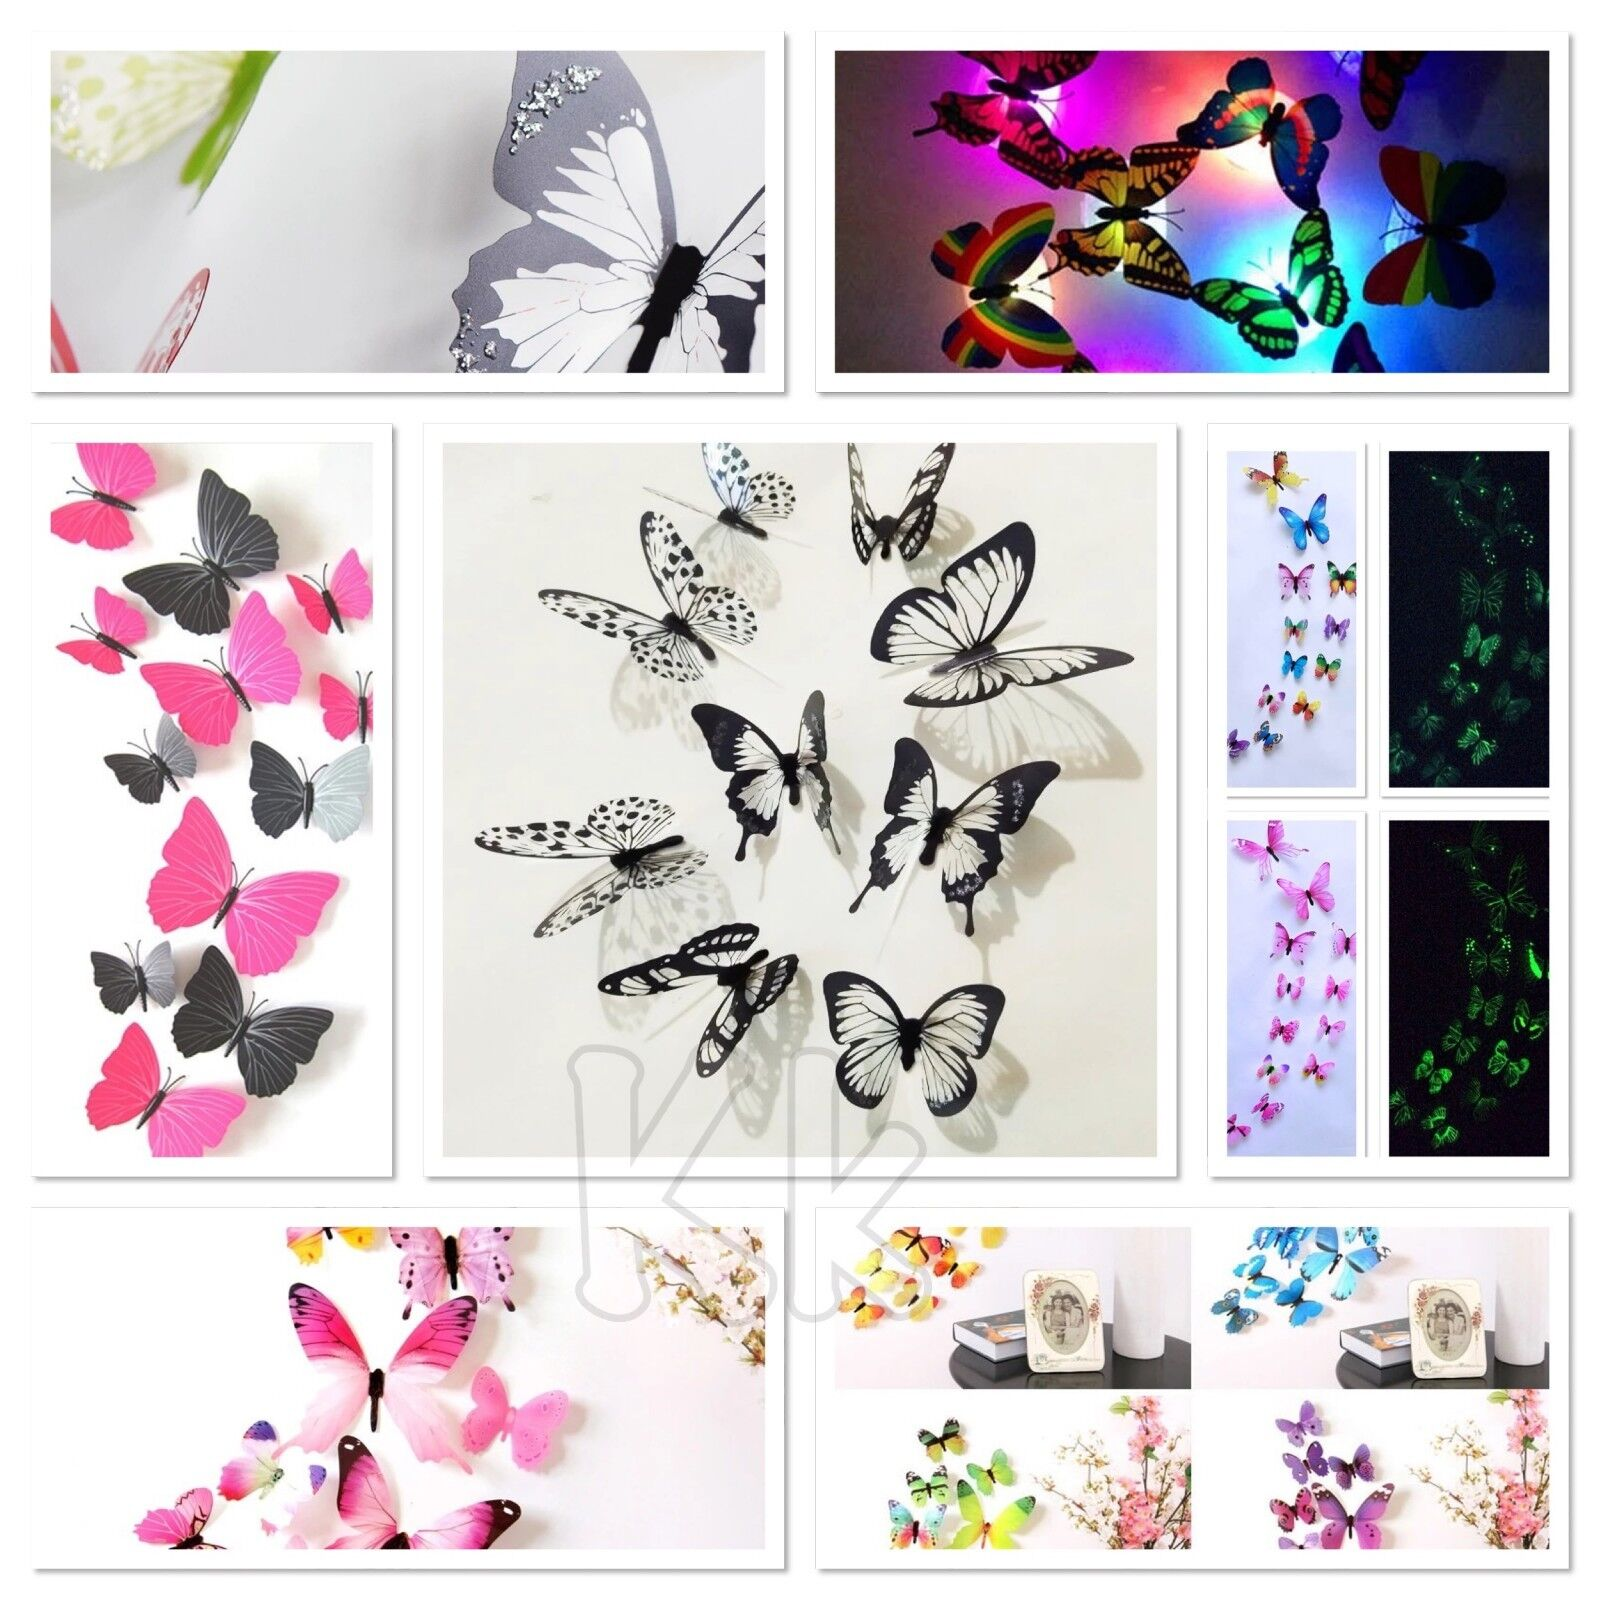 Home Decoration - 18/12 led 3D  Butterfly Art Decal Home Decor PVC Butterflies Wall Mural Stickers